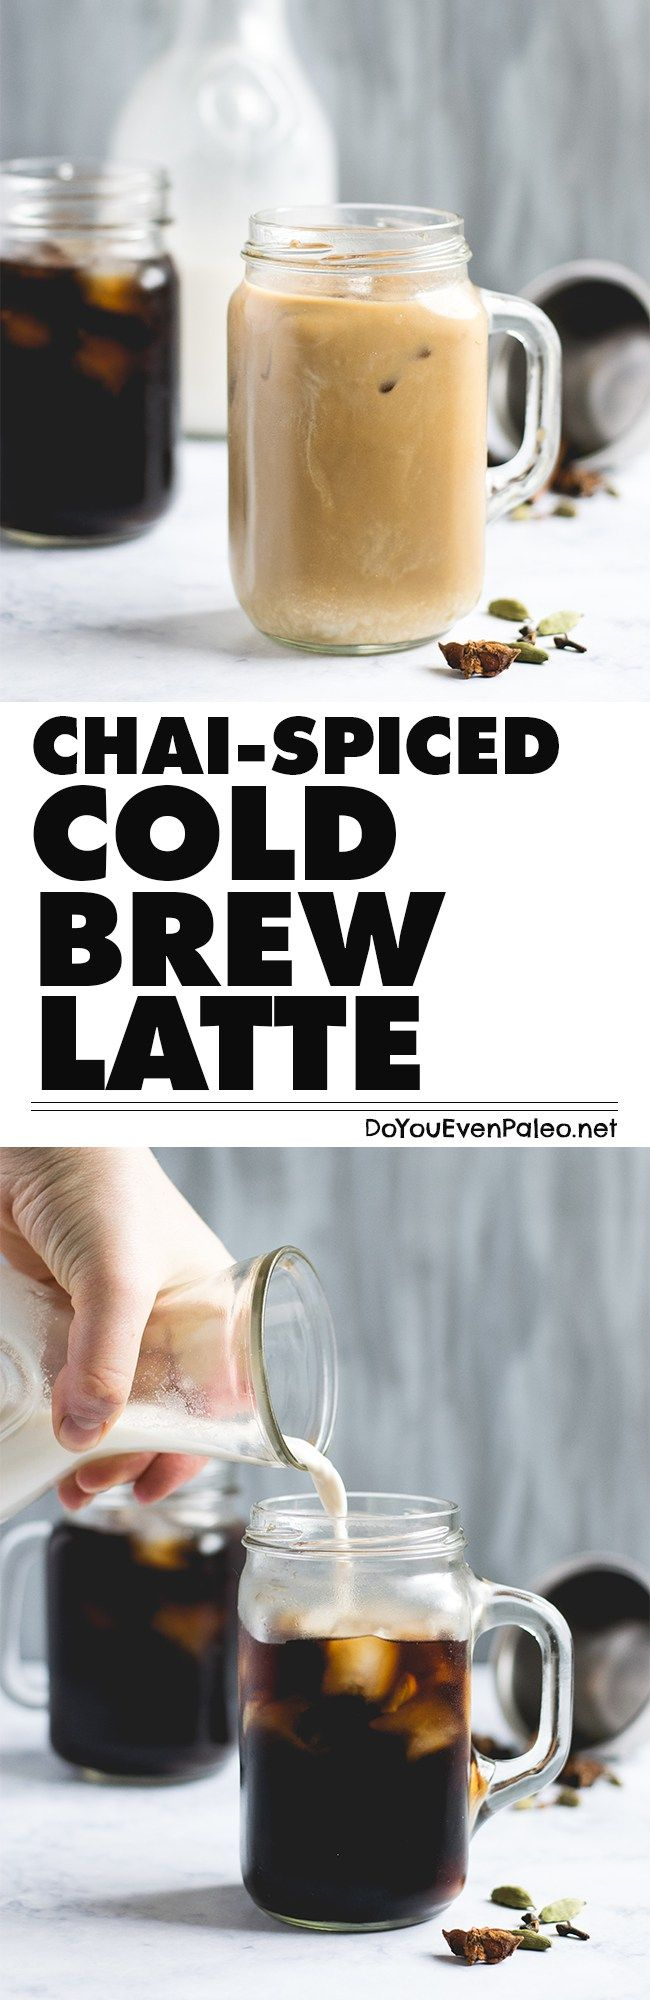 This blend of chai spices and cold brew coffee makes an unbeatable summer drink! It's gluten free, paleo, vegan, and just plain awesome. | DoYouEvenPaleo.net